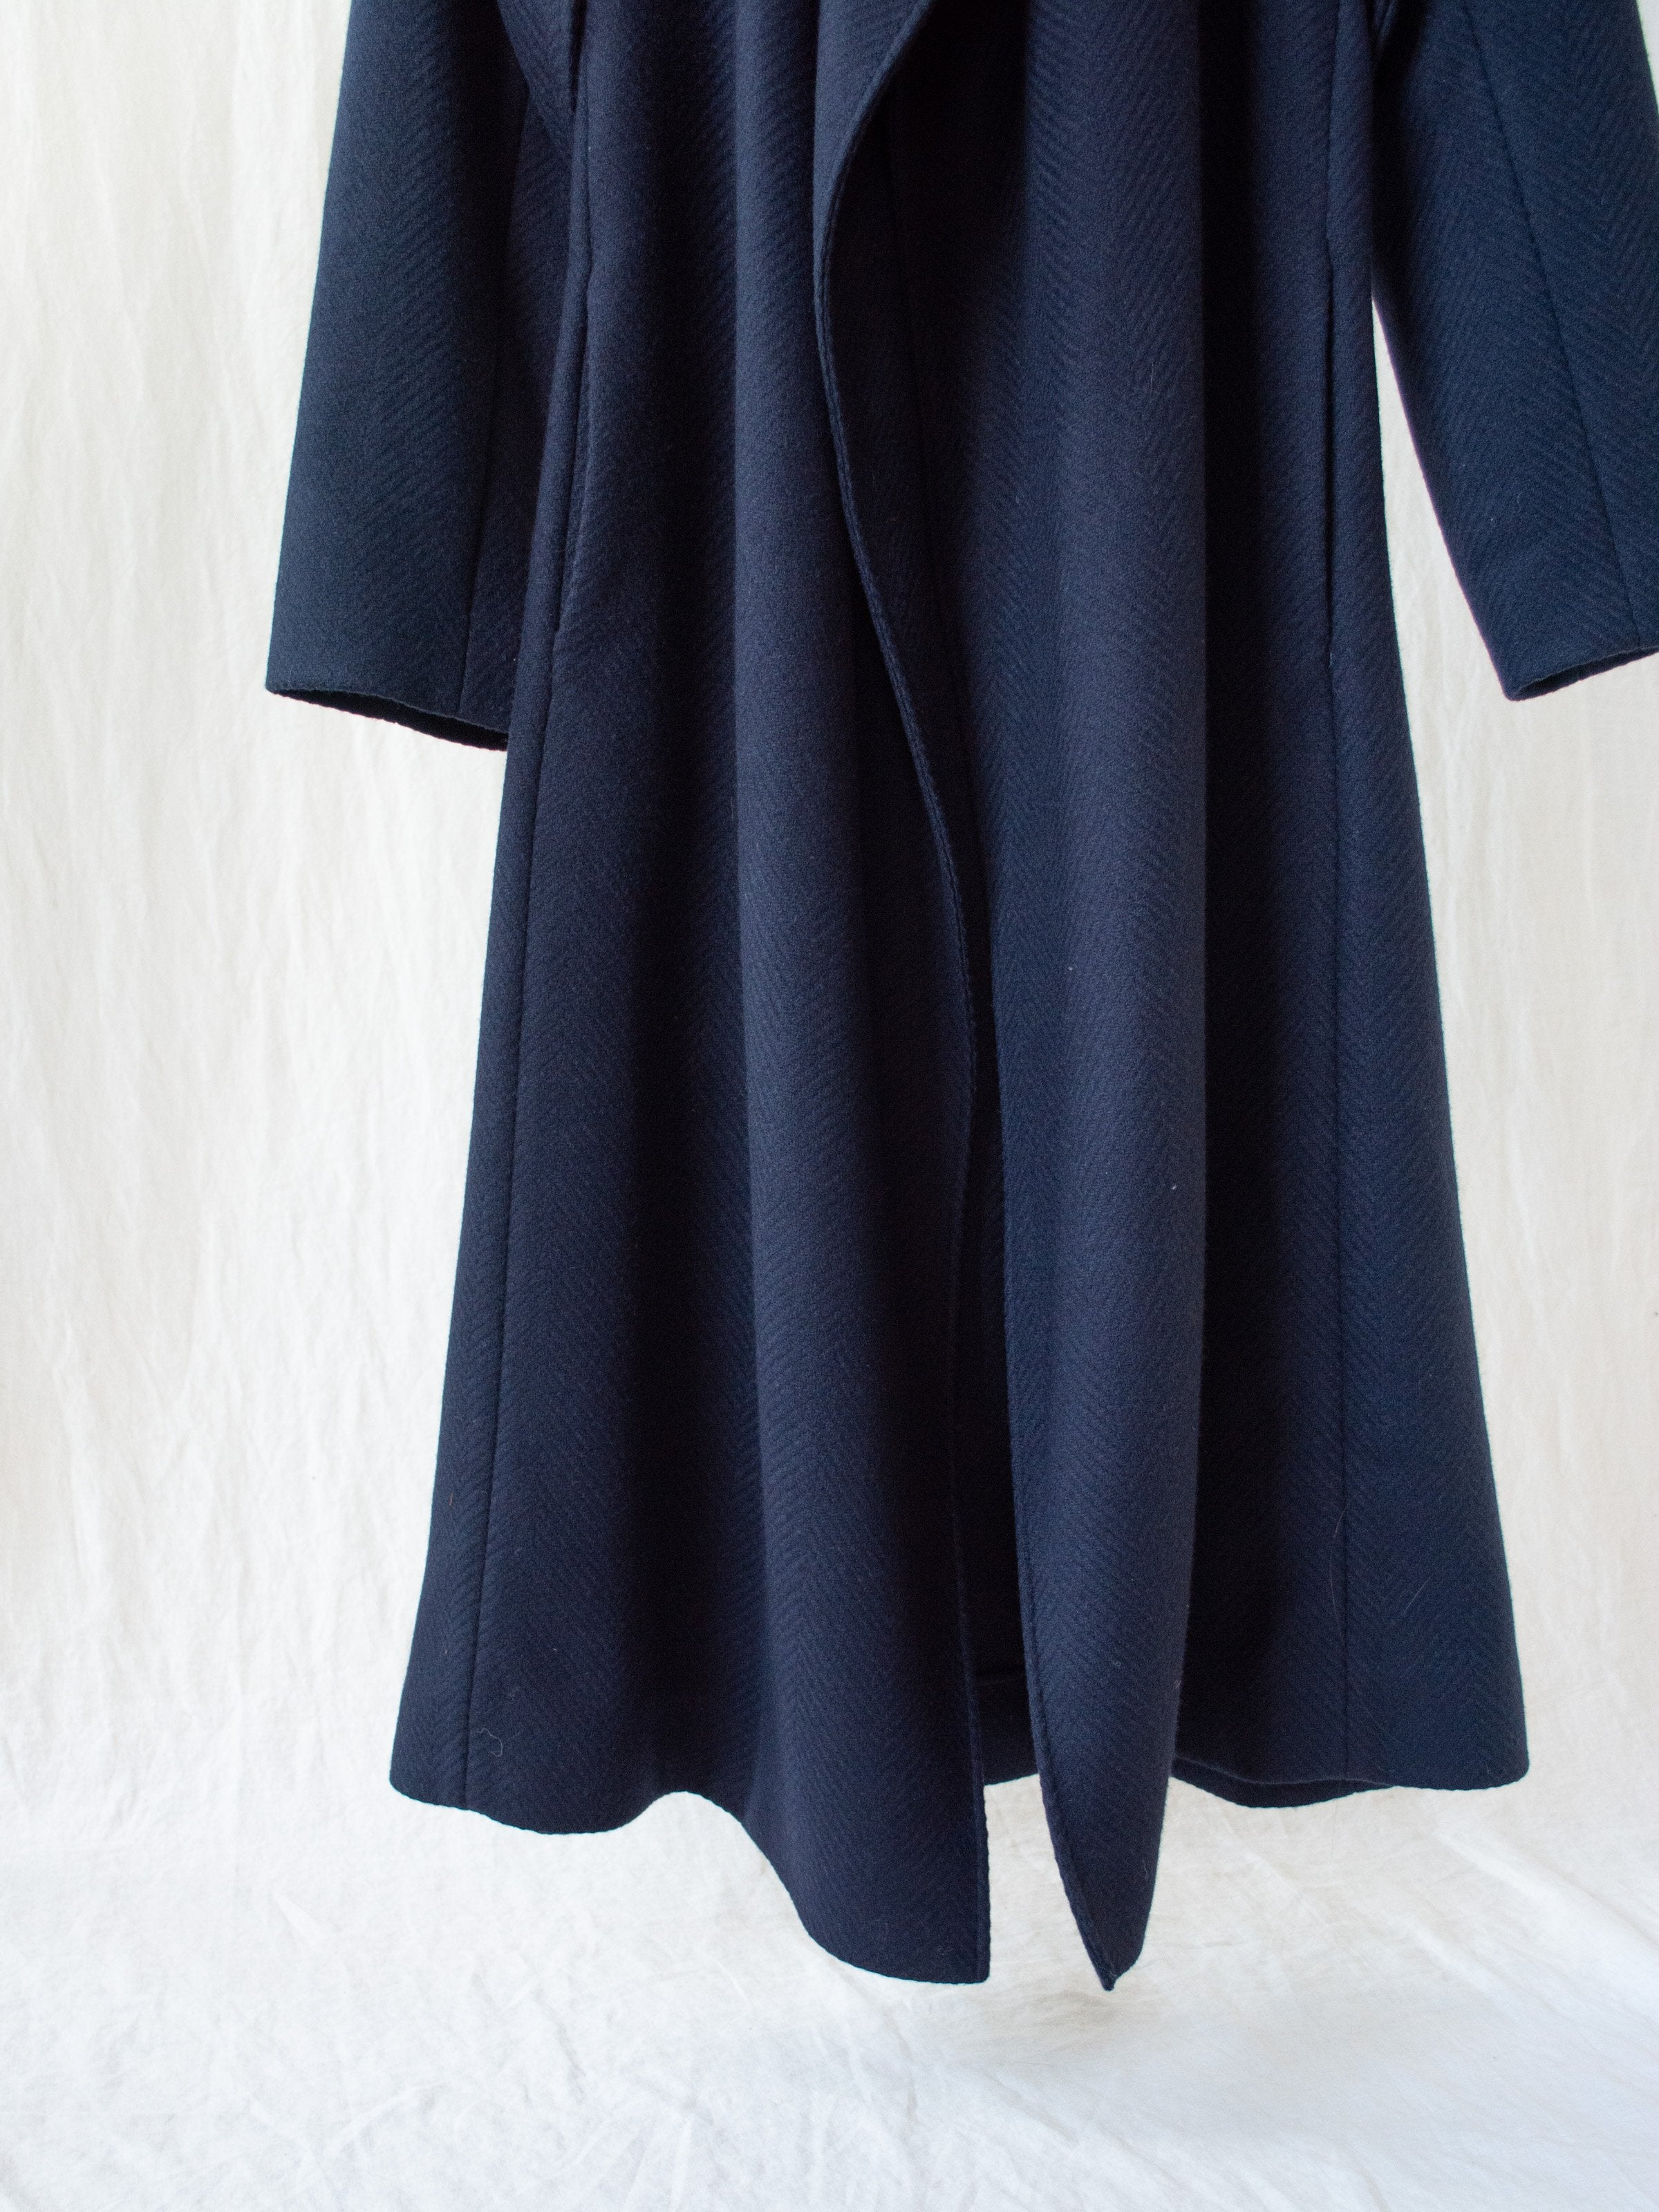 Namu Shop - Studio Nicholson Parsec Herringbone Drape Wrap Wool Coat